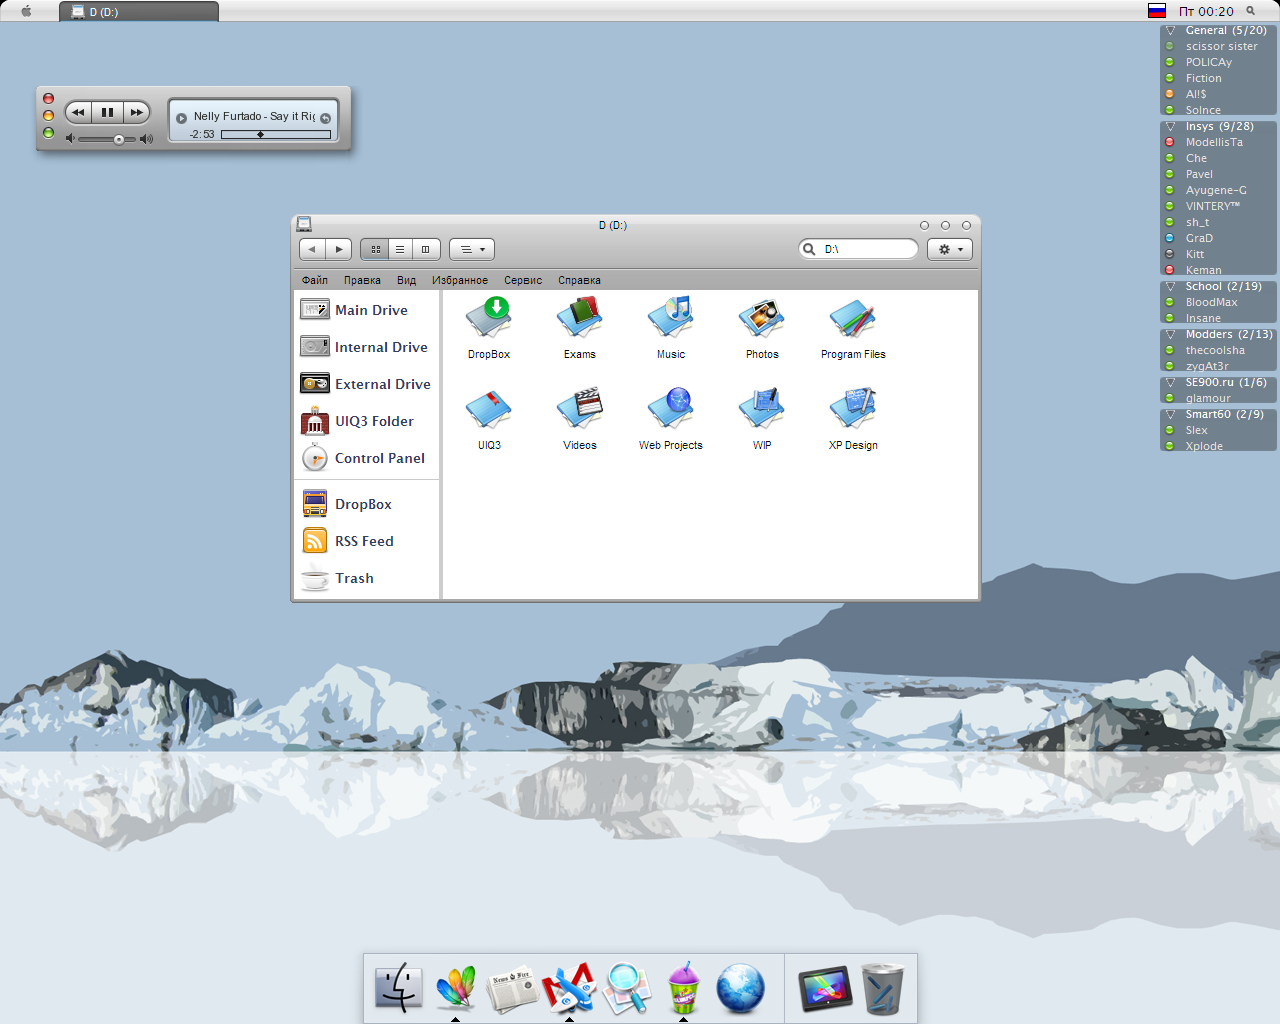 11.05.07 Desktop by Steeply